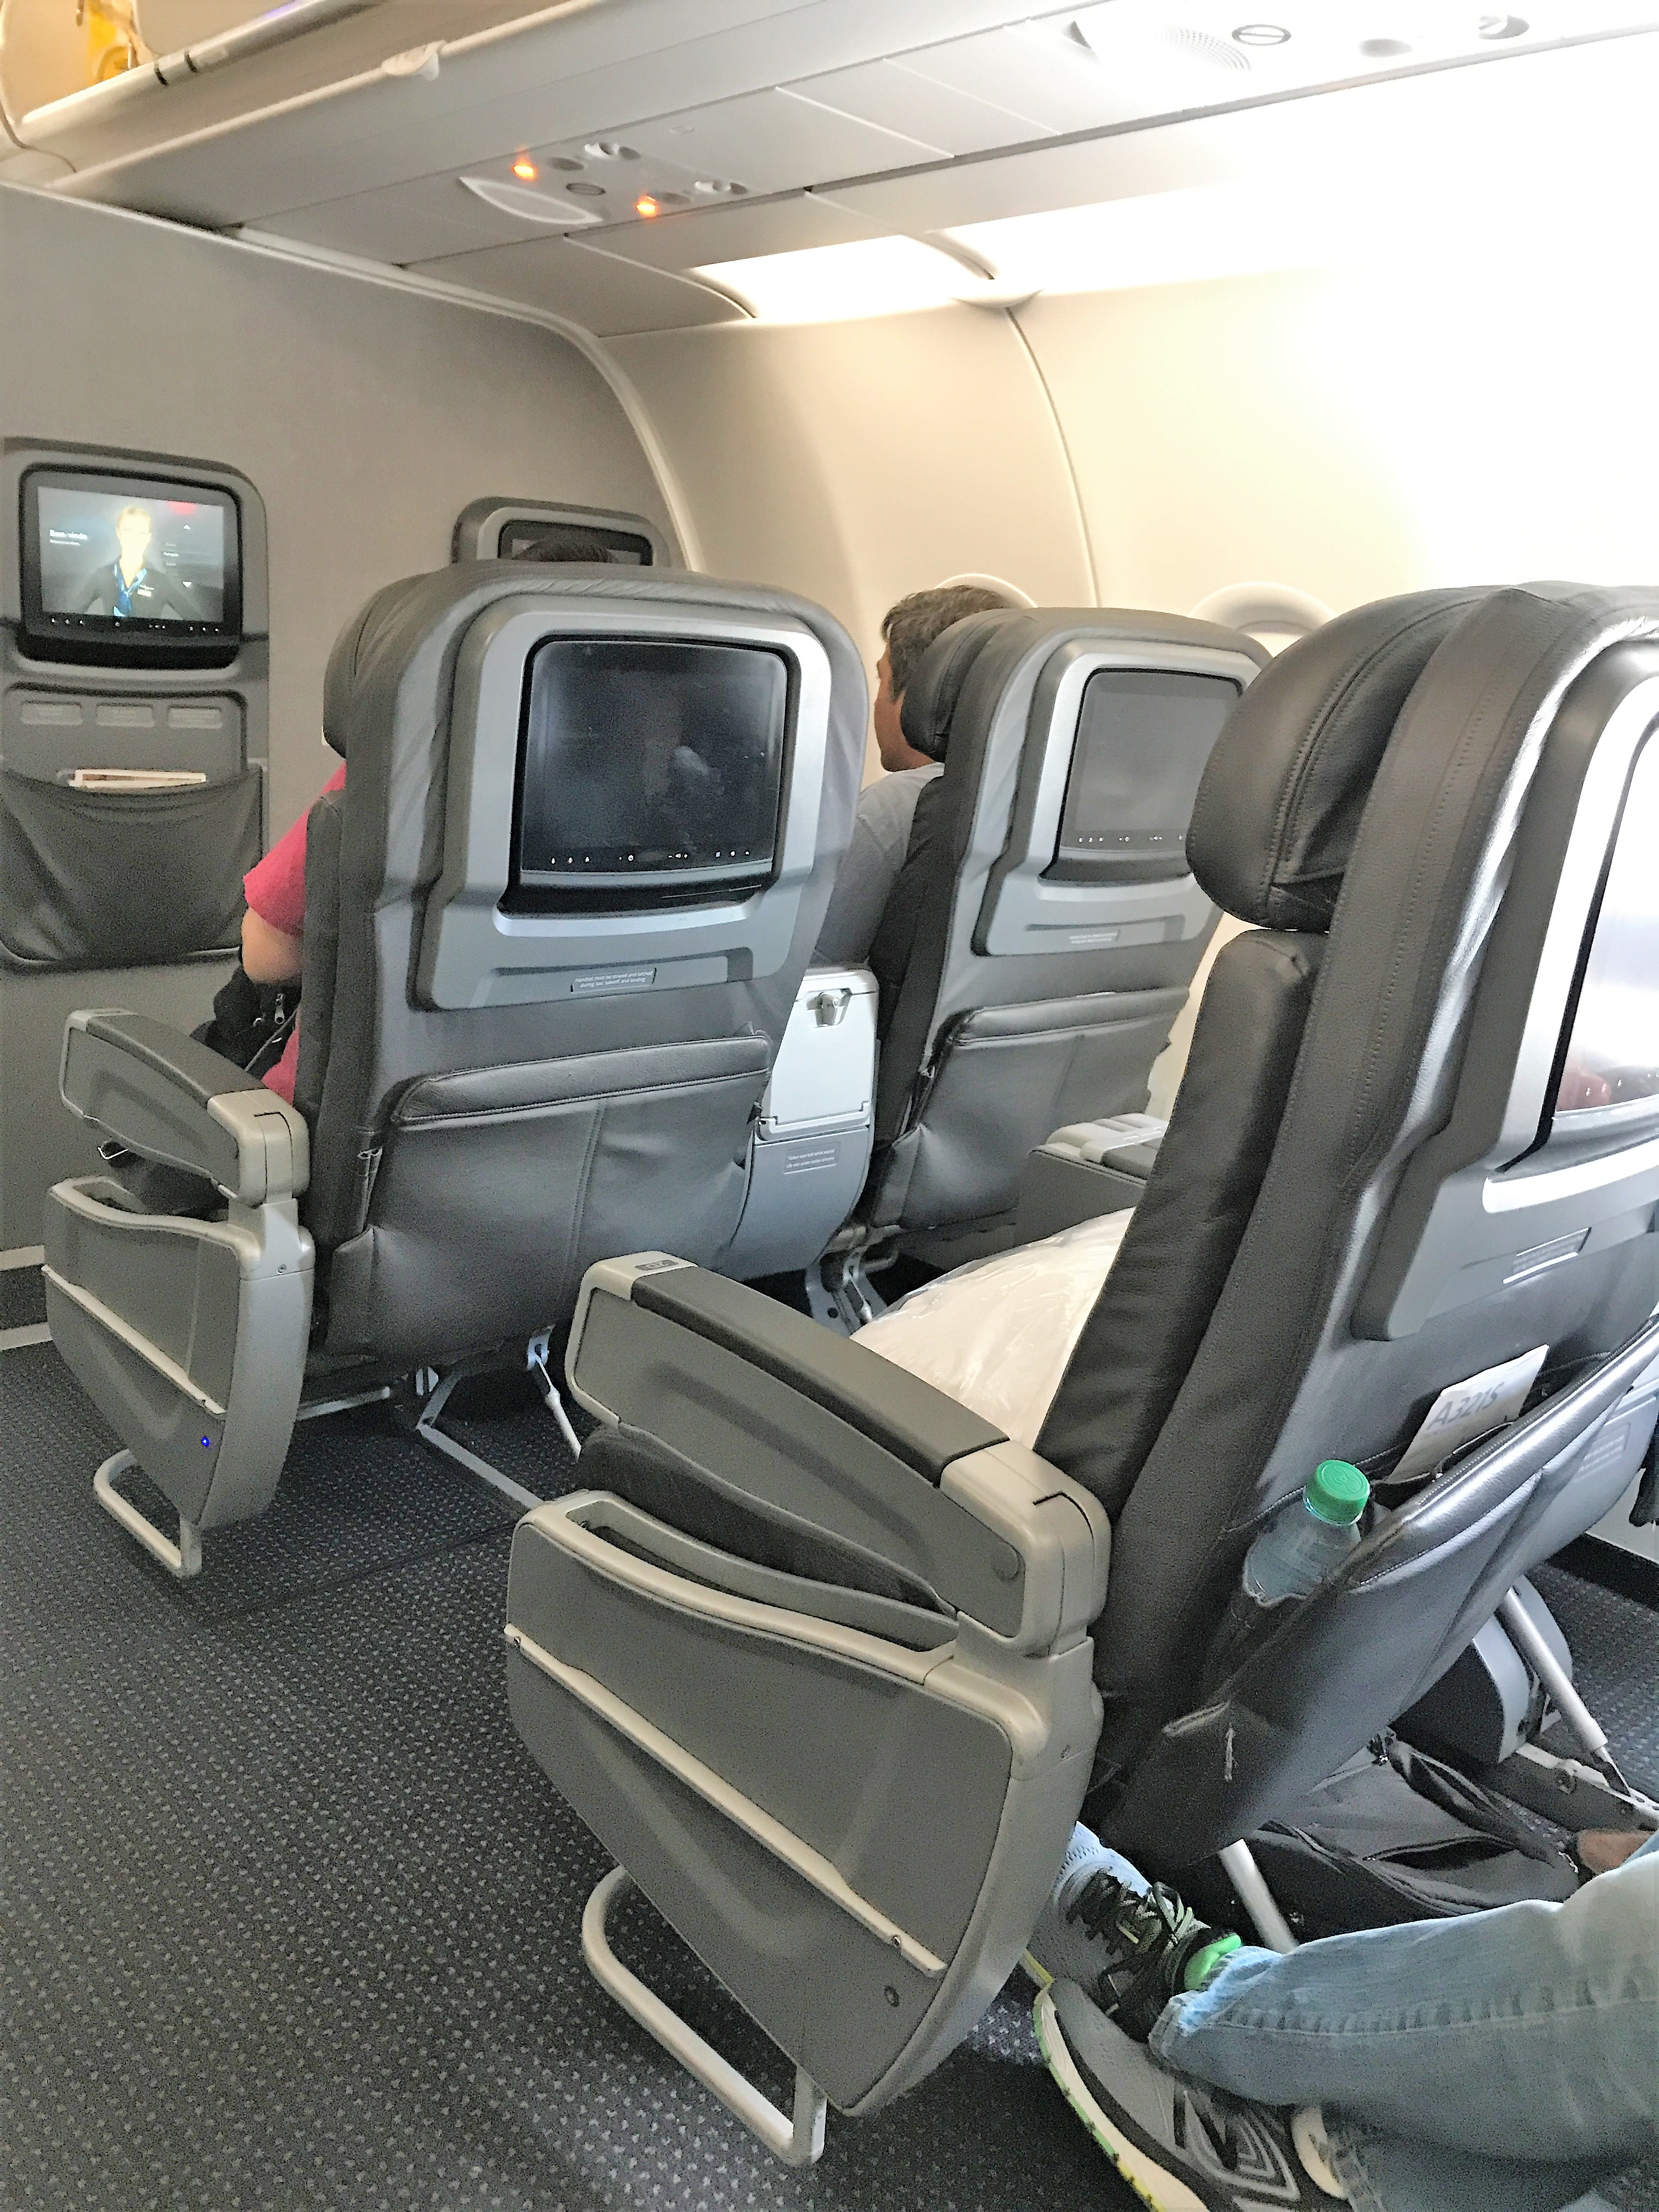 American Airlines A321 First Class Los Angeles Honolulu Review Lax